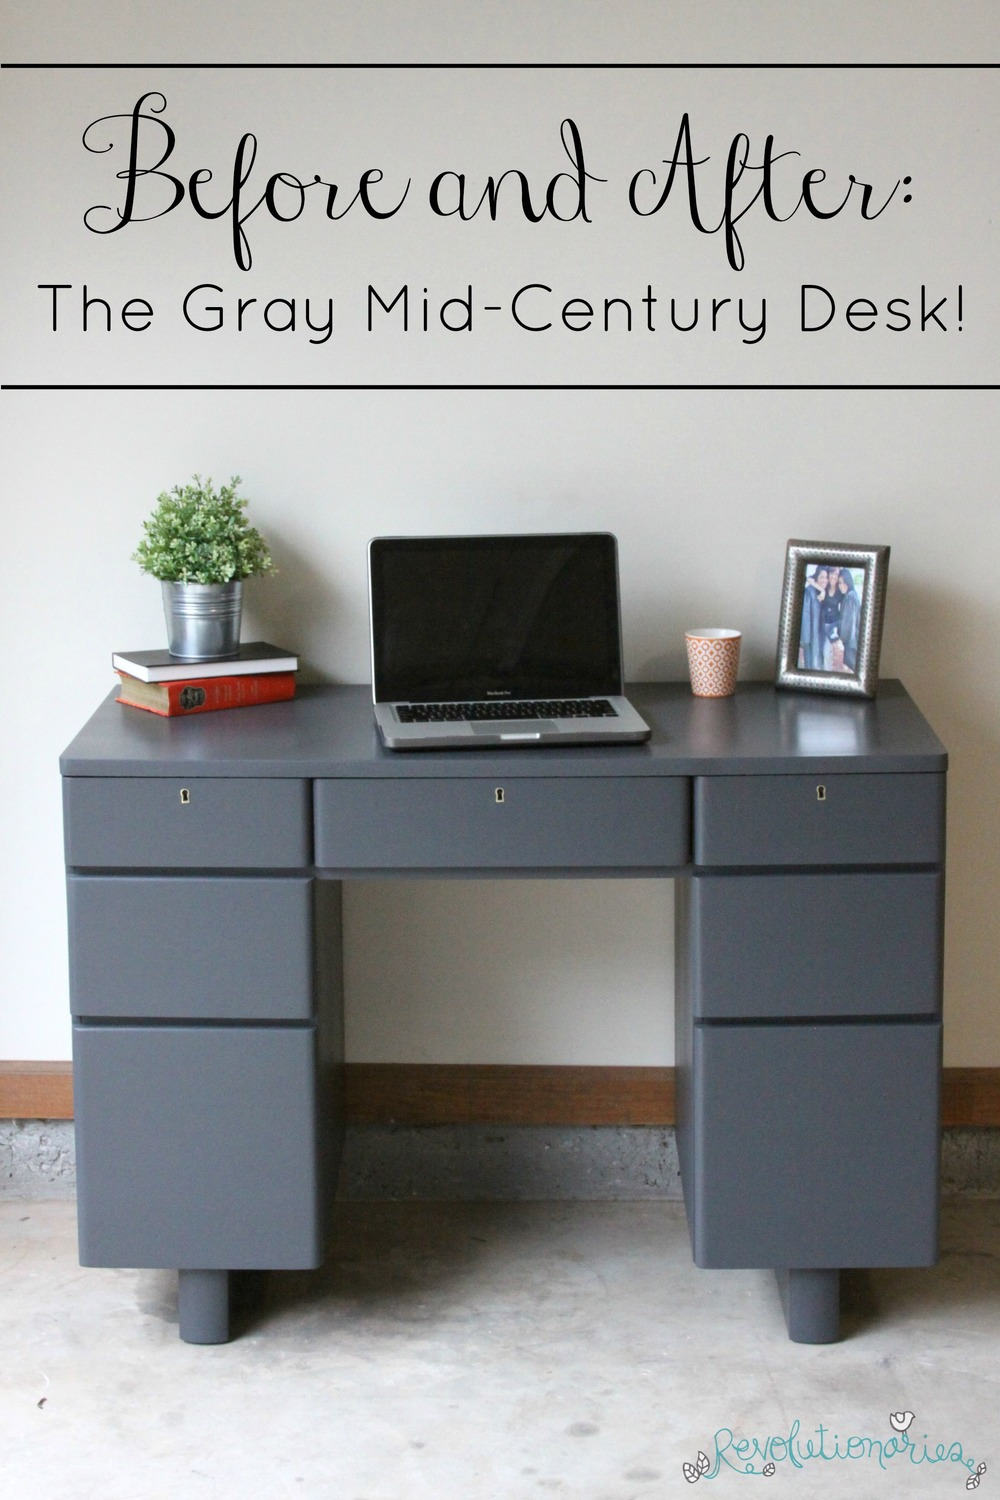 before-and-after-gray-mid-century-desk-7.jpg